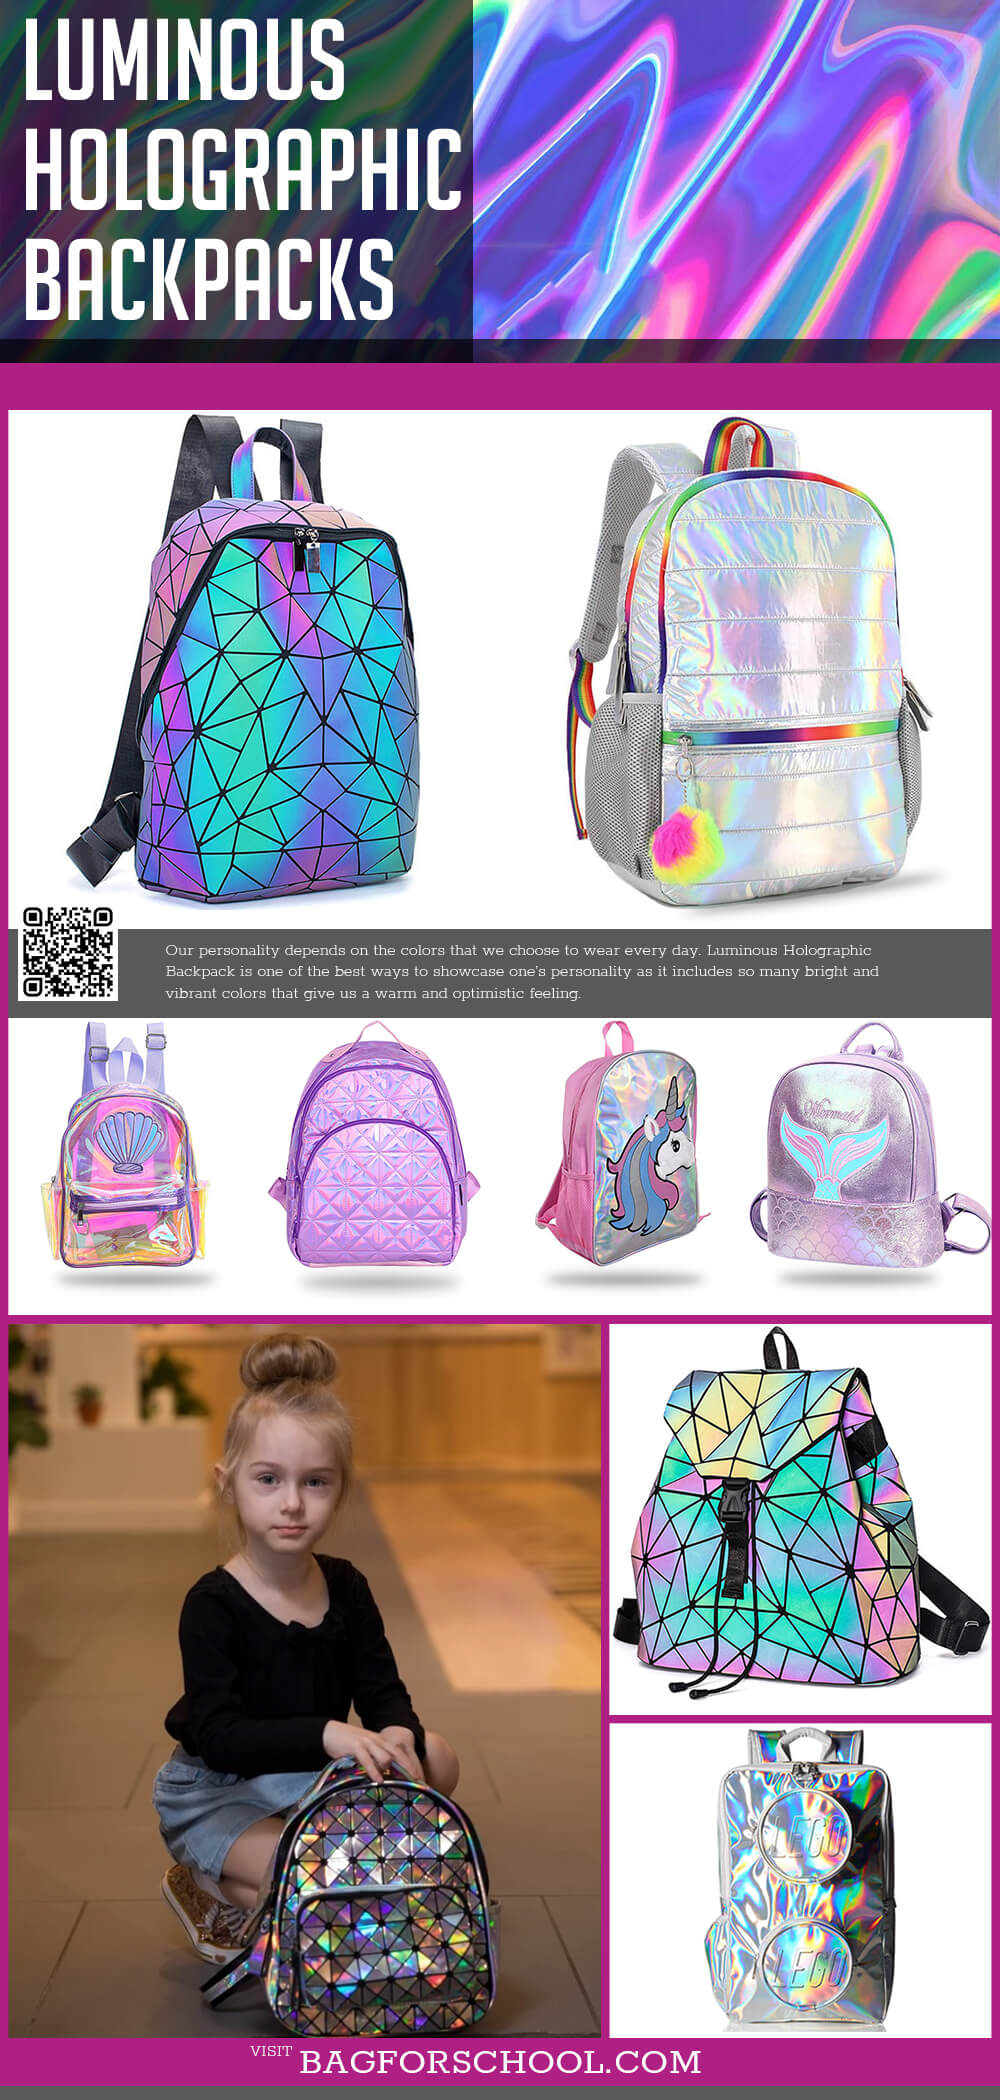 Luminous Holographic Backpacks